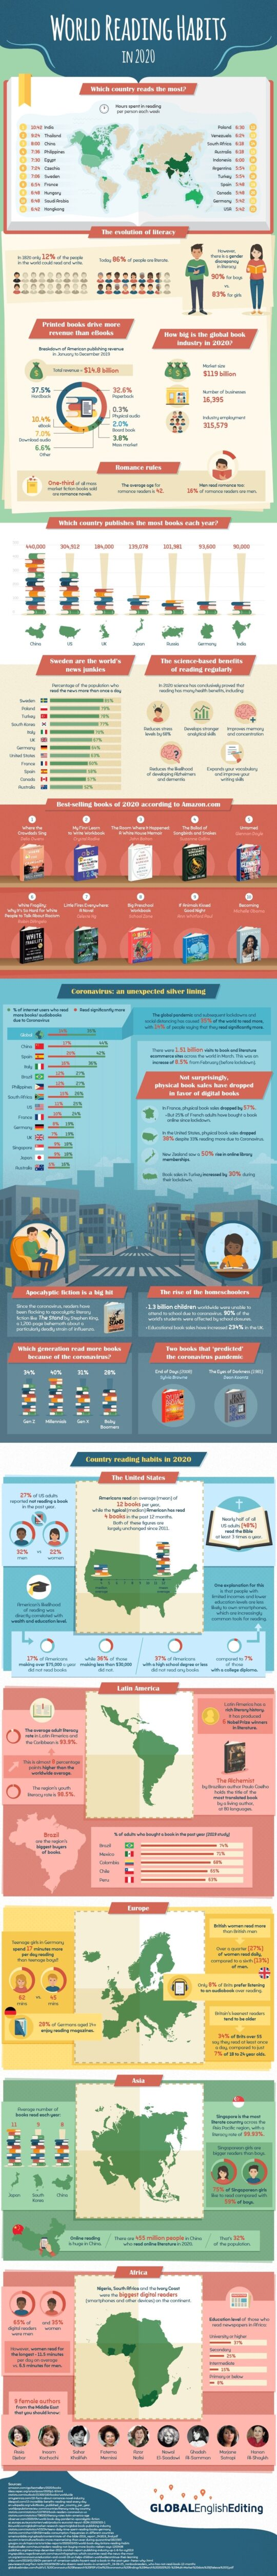 World reading habits in 2020 full infographic